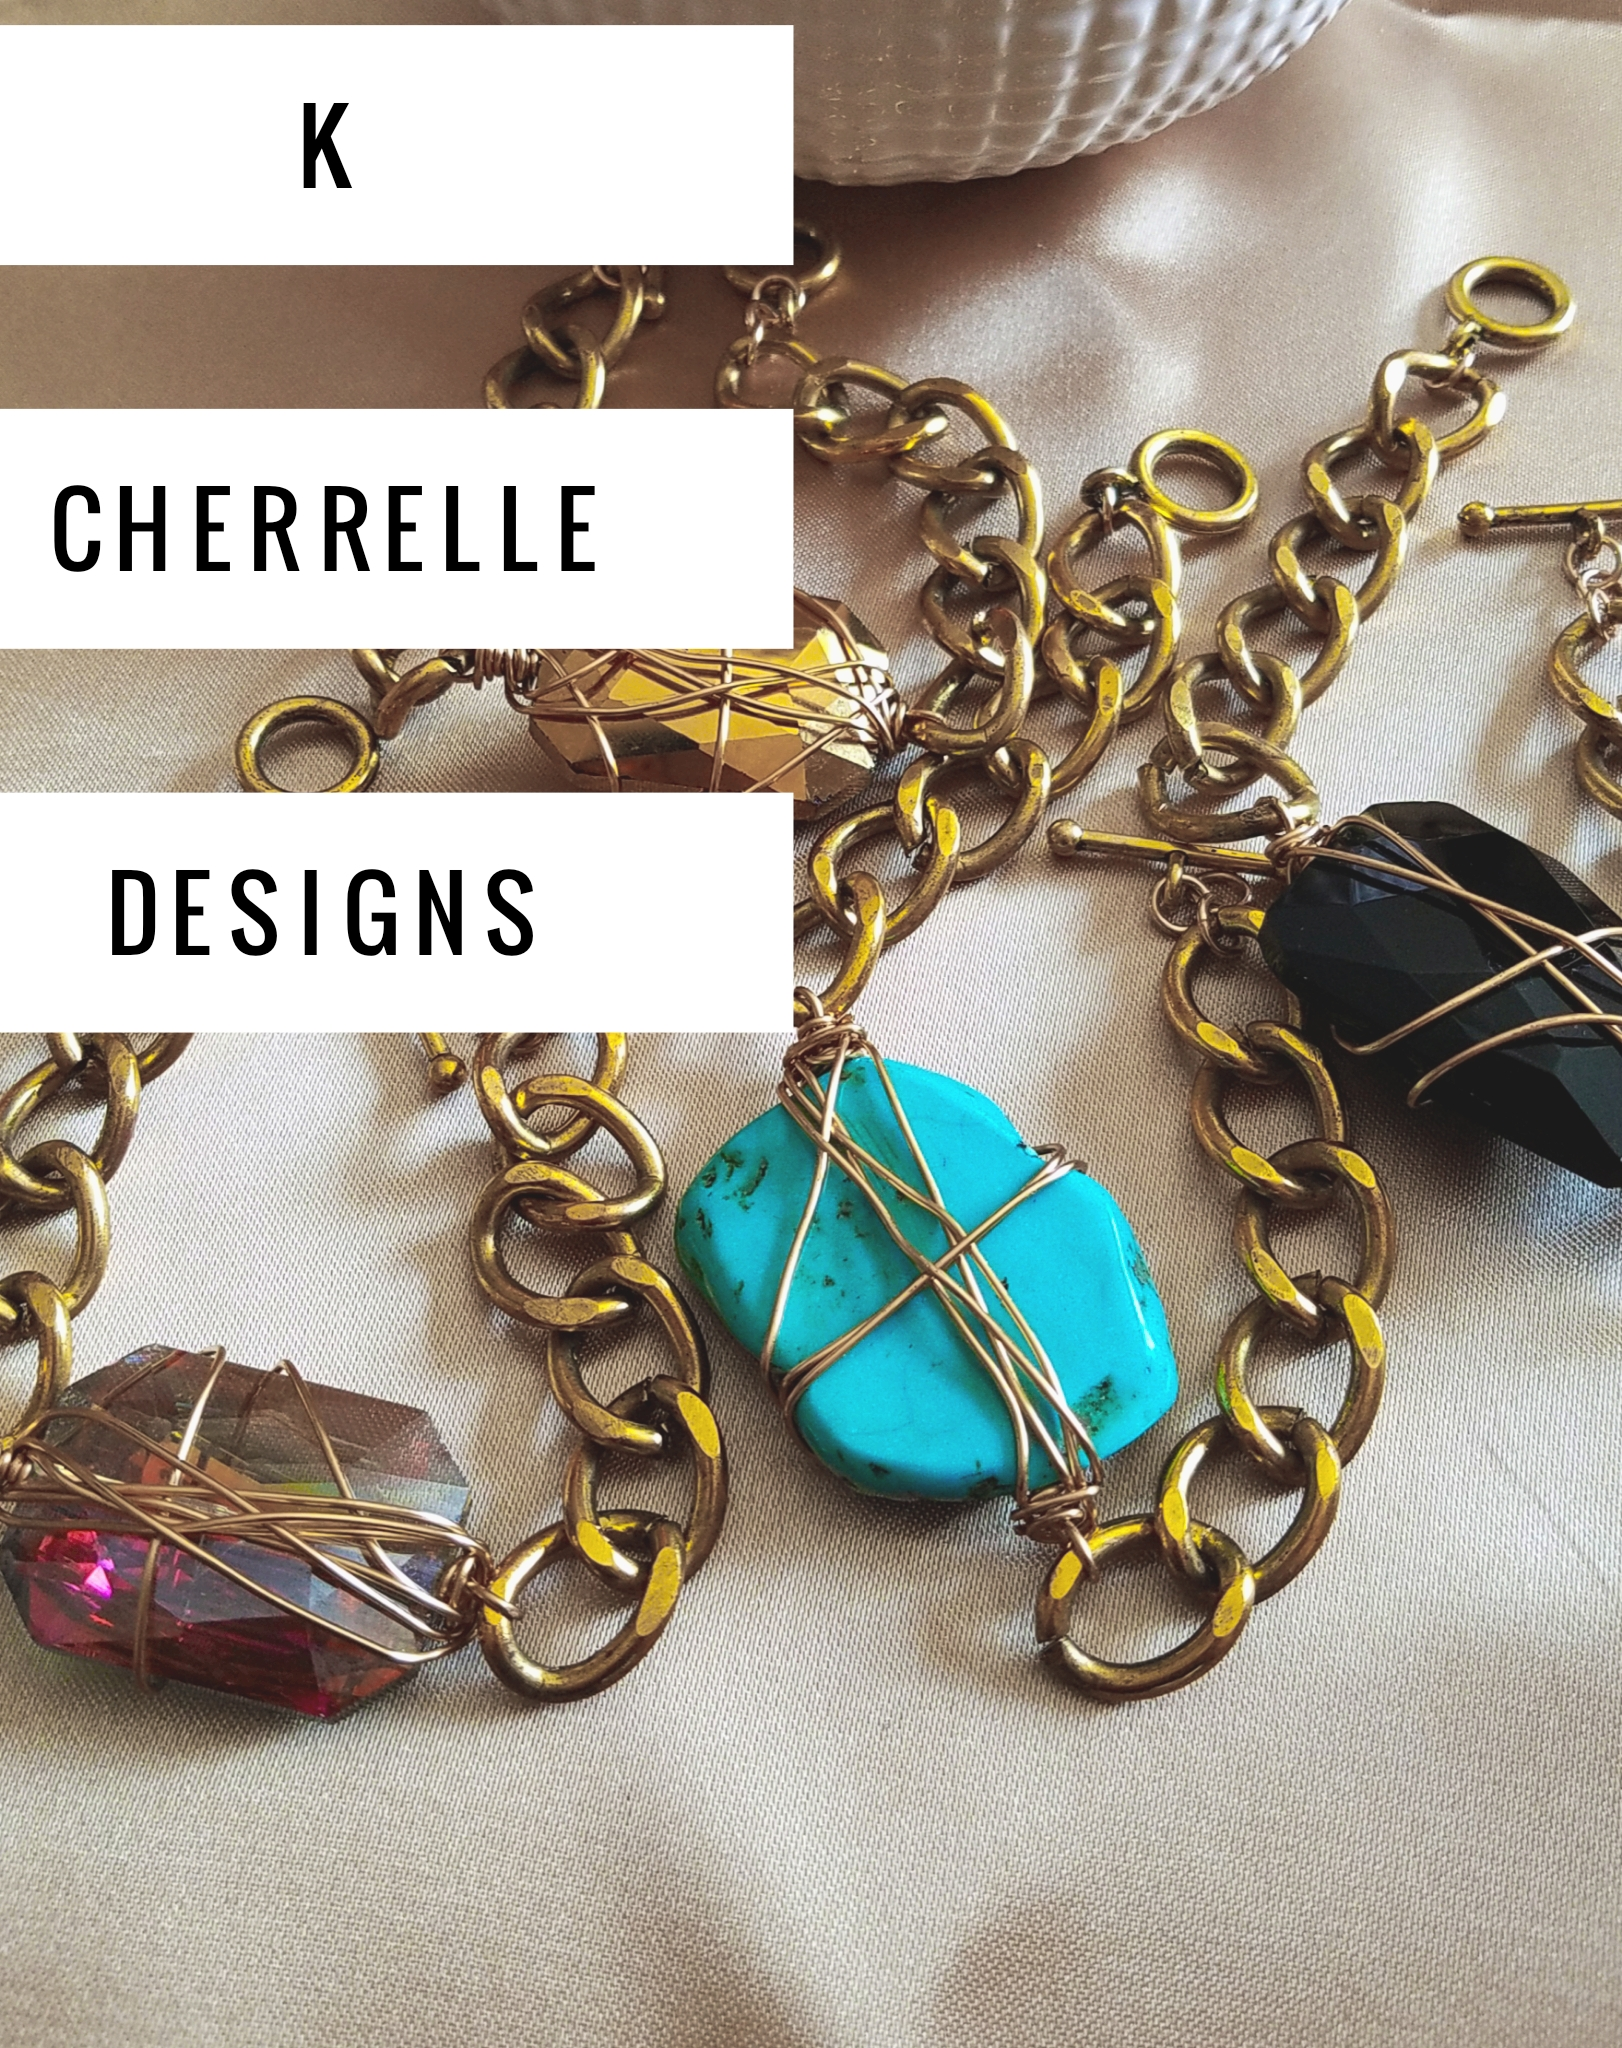 "K Cherrelle Designs   K Cherrelle Designs creates for the woman who knows that she is ""Unique"" by no accident. She's confident in whom she is and what she does; she's urban with a twist and her style is an expression of what her soul says she is; and she wears it well  Kim Cherrelle began designing and fabricating Handcrafted accessories close to 20 years ago. It has always been her passion to create fashion jewelry pieces that could be passed down for years to come. The designs are unique and you can almost tell a K Cherrelle design anywhere. She uses the best in brass, gold over brass, gold filled, 925 sterling silver, glass, Swarovski Crystals, wood, leather and more.  "" I believe that Every woman has her own unique style...something that makes her stand out. I design for the woman who knows that creating her own style is worth every compliment."""